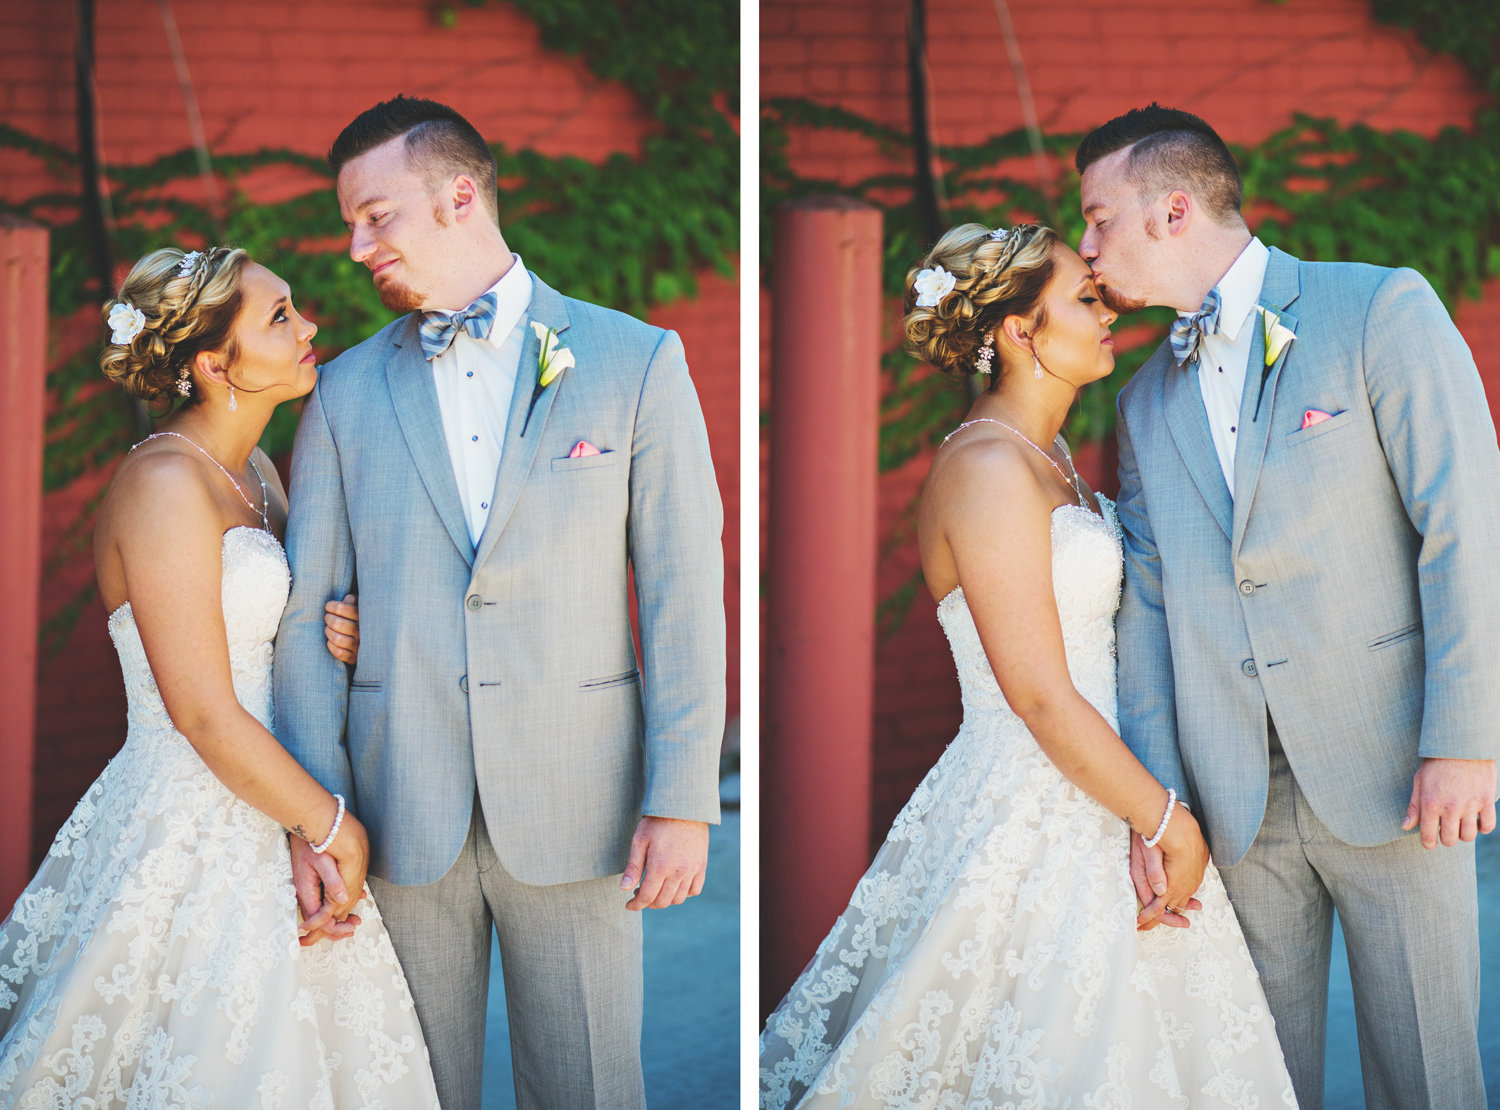 veranda_wedding_photographer_st_joseph_wedding_01.jpg